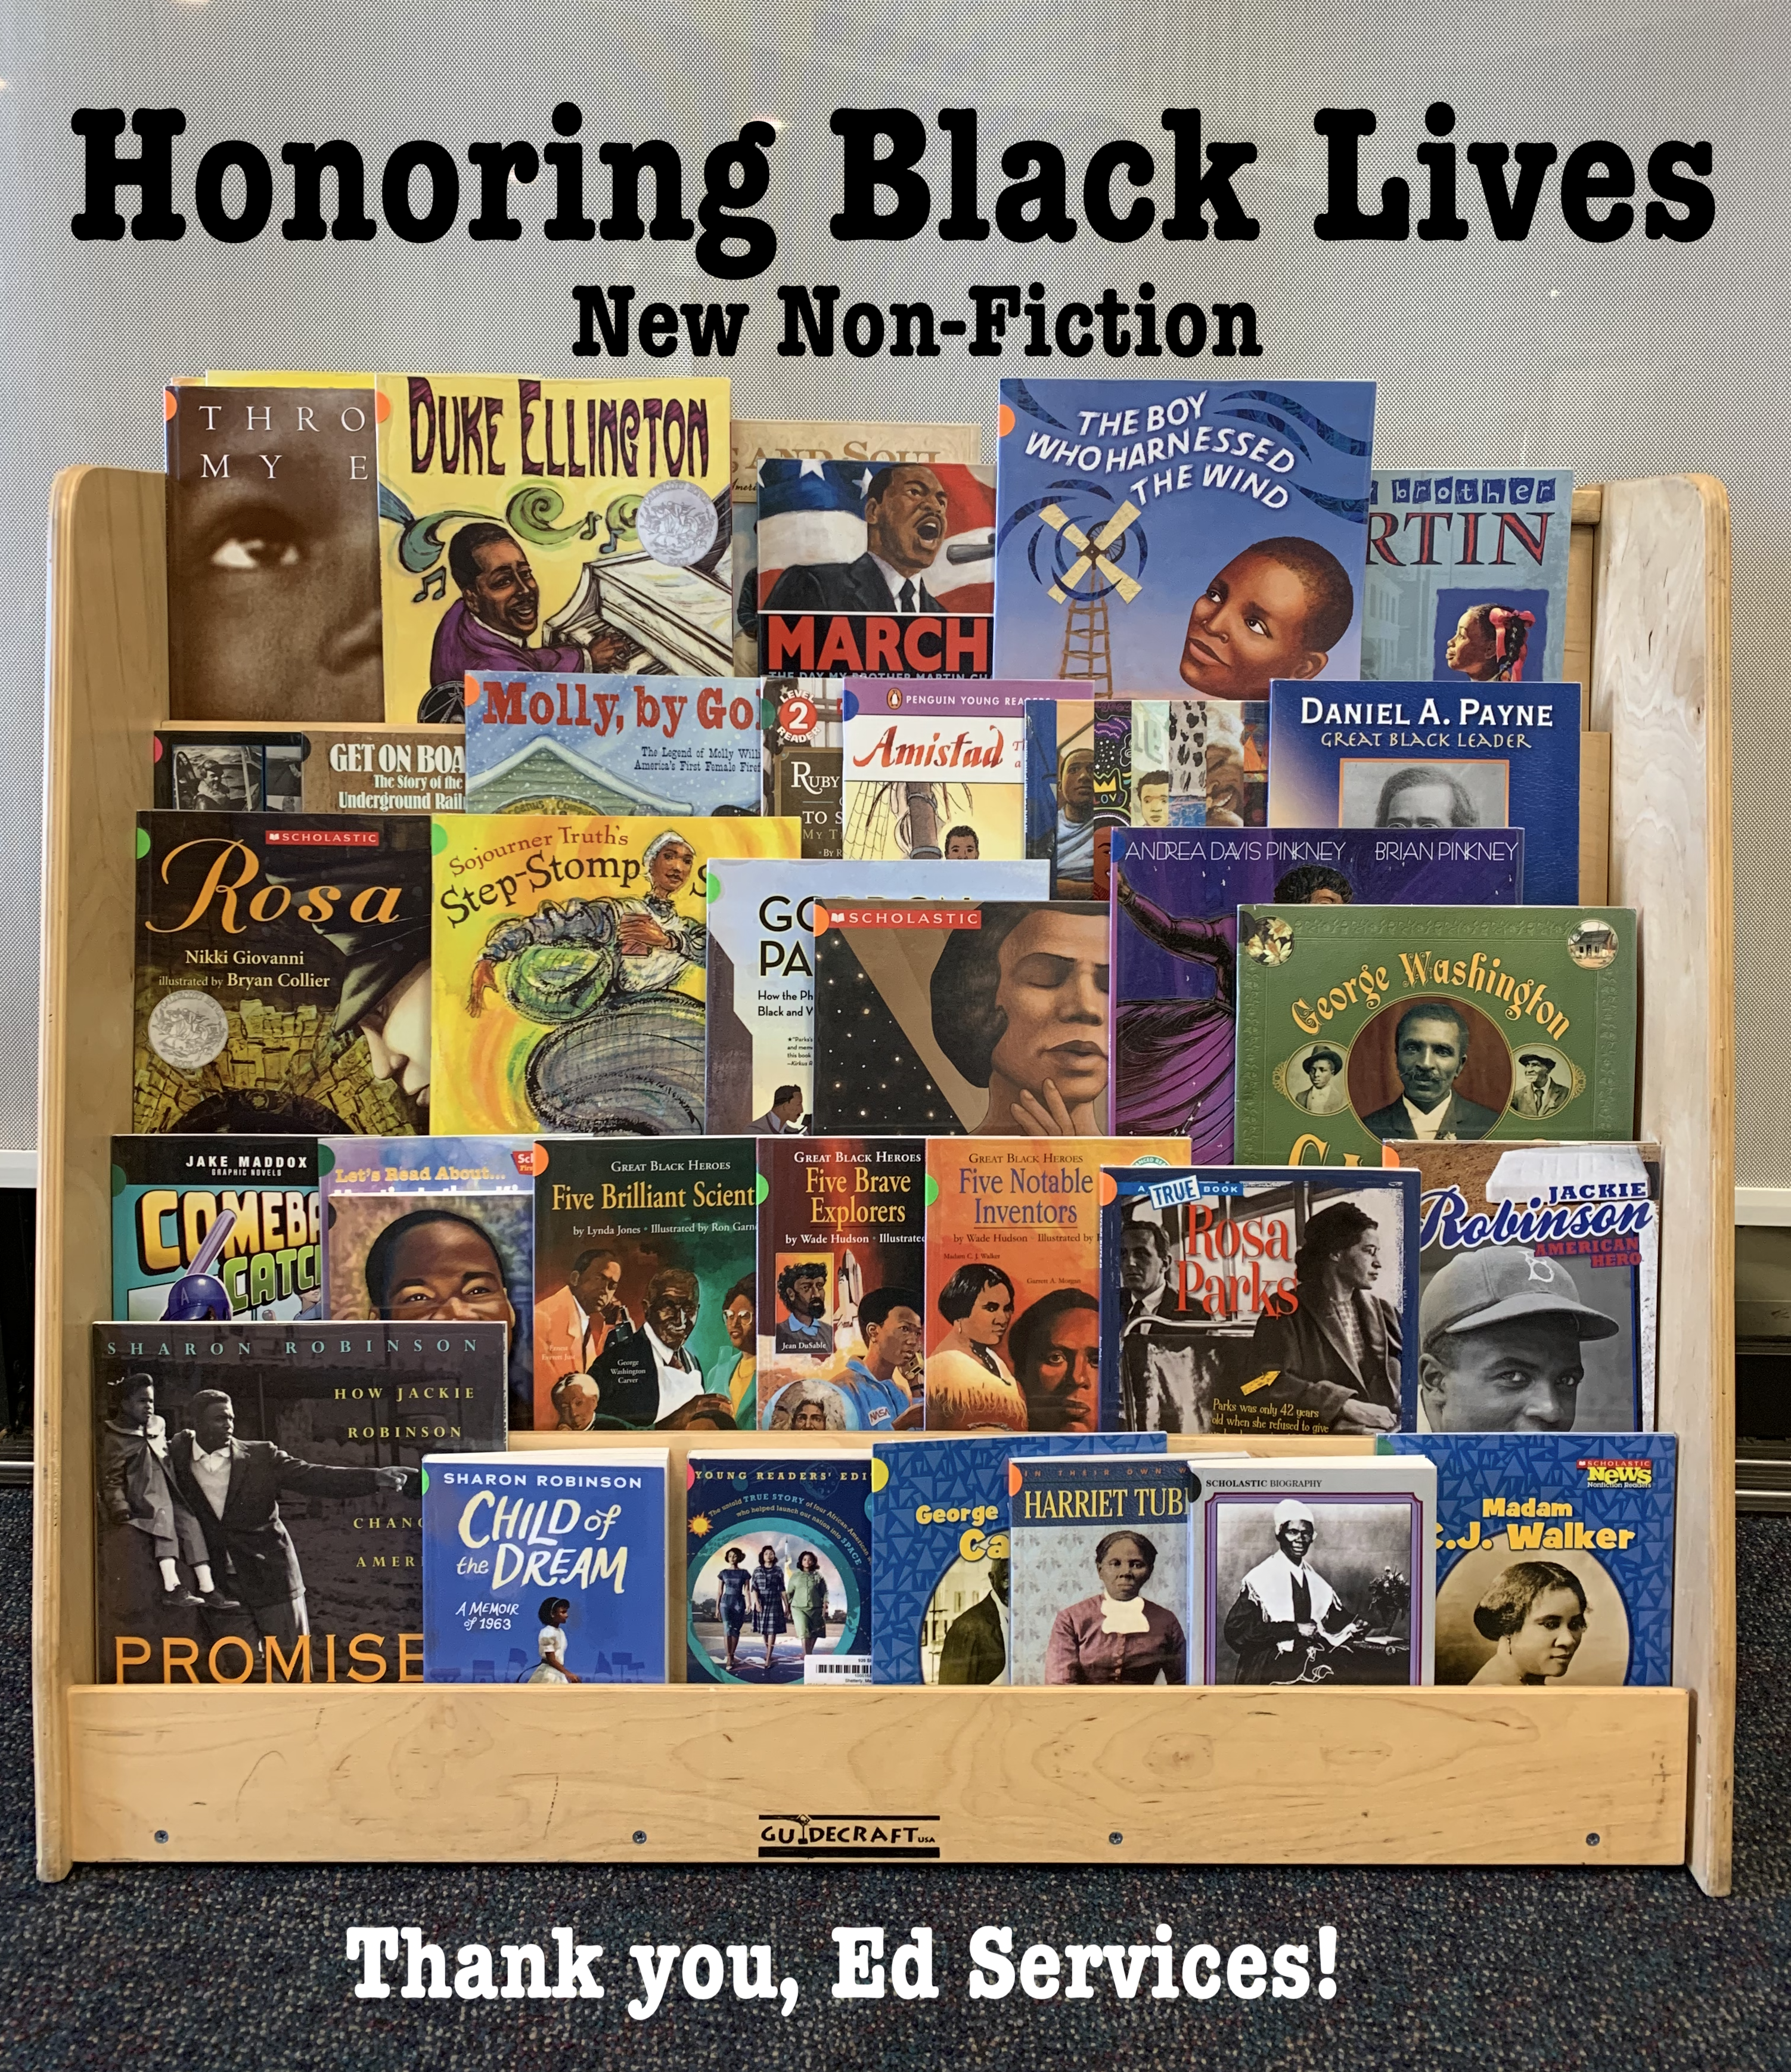 Honoring Black Lives New Non-Fiction